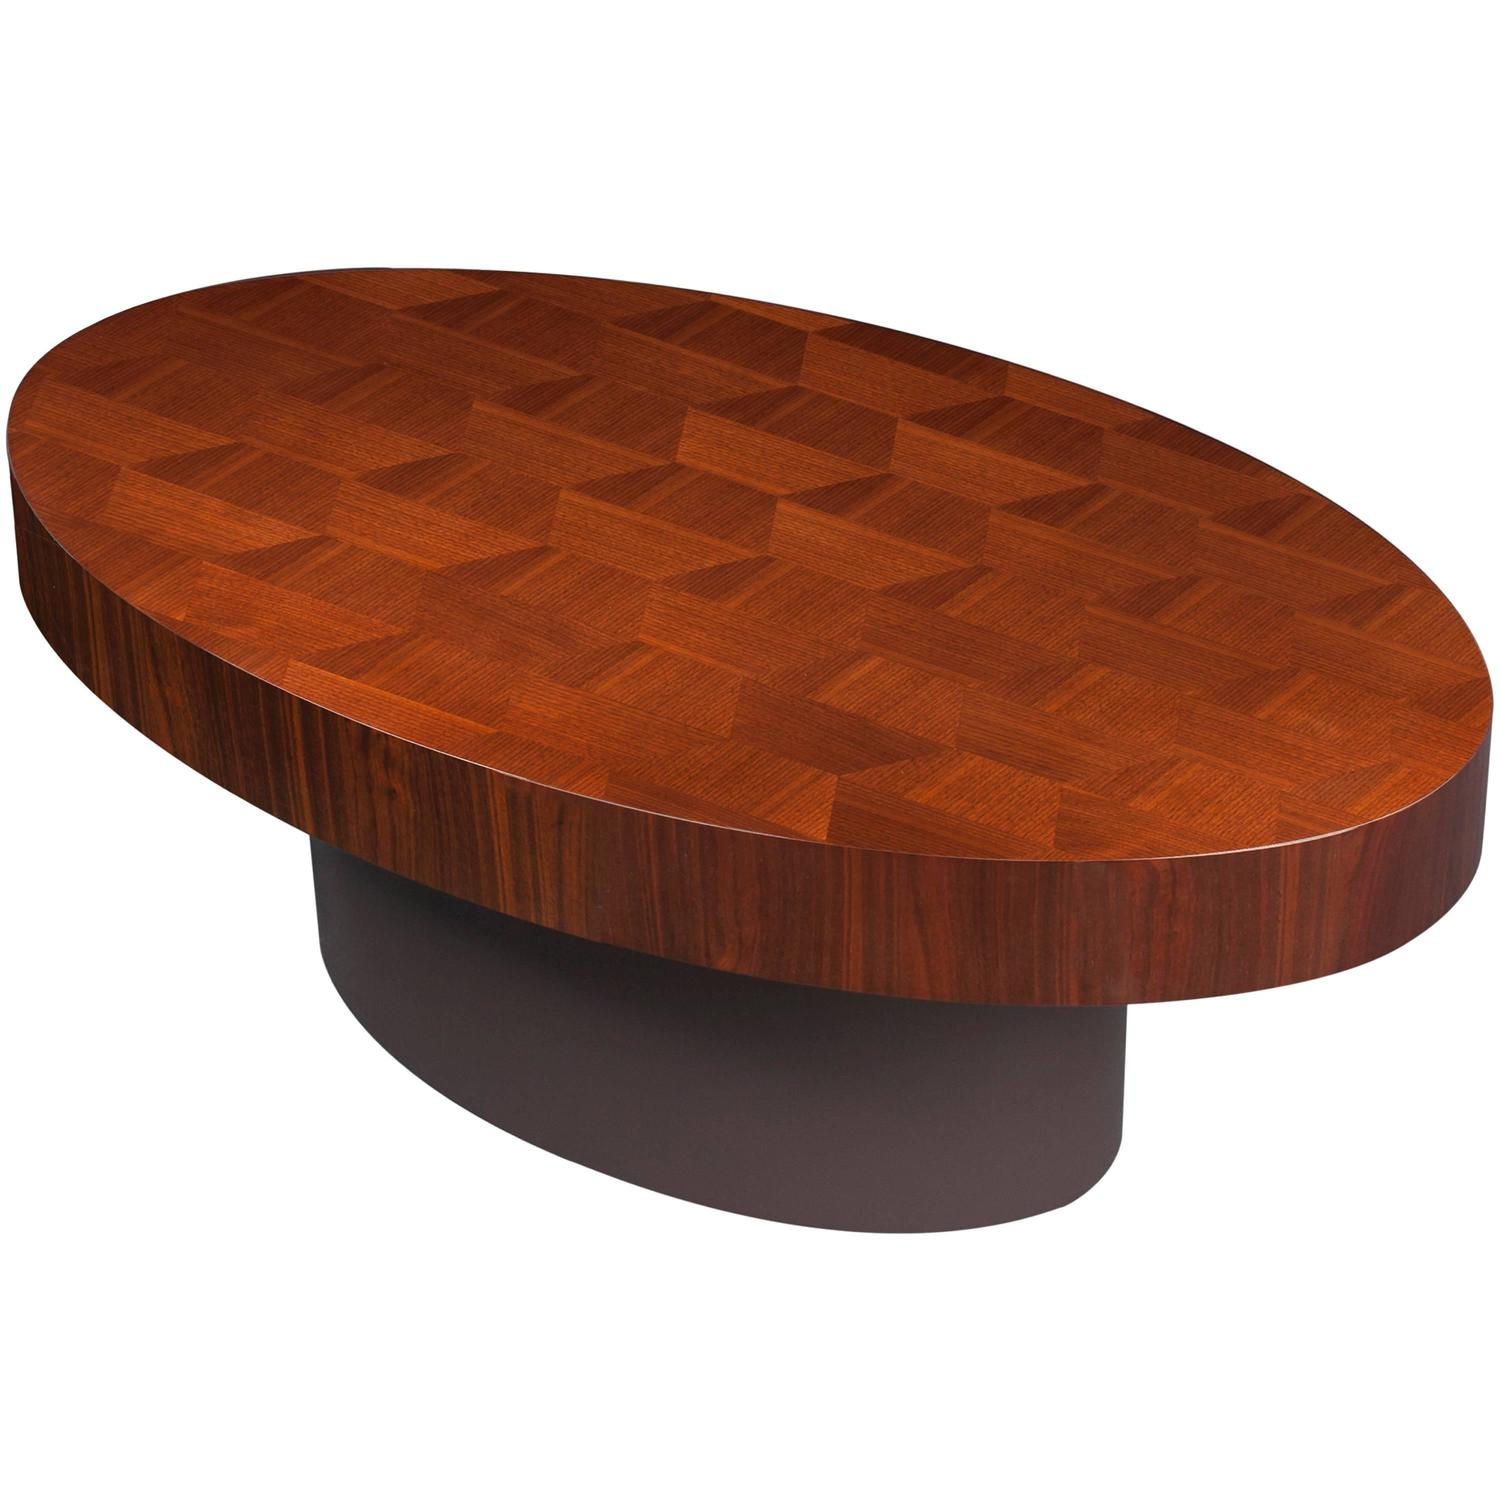 Contemporary oval chequerboard walnut wood coffee table from france for sale at 1stdibs Wood oval coffee table